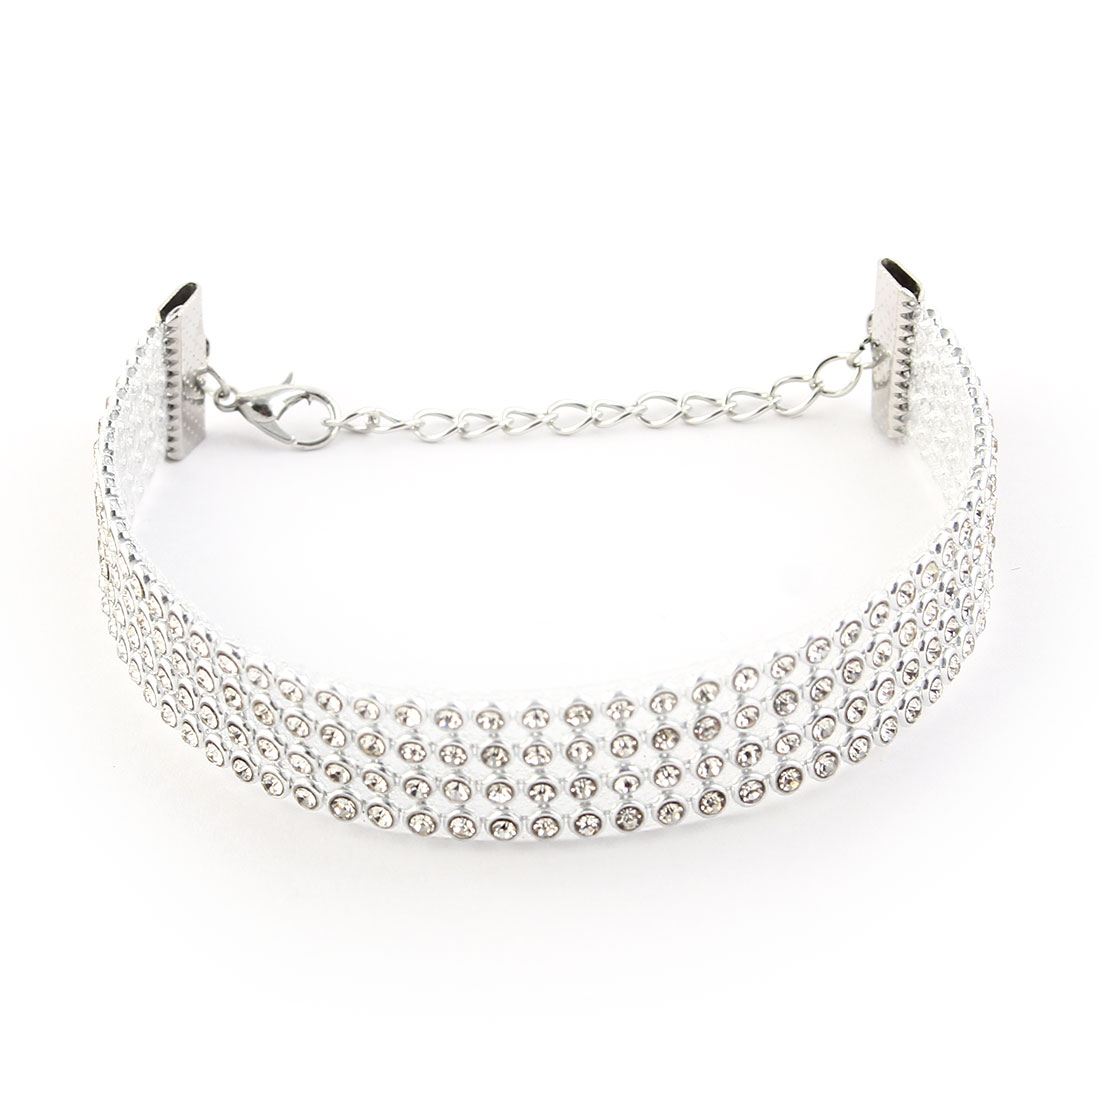 Women Ladies Acrylic Faux Rhinestones Decor Adjustable Hand Chain Bracelet White